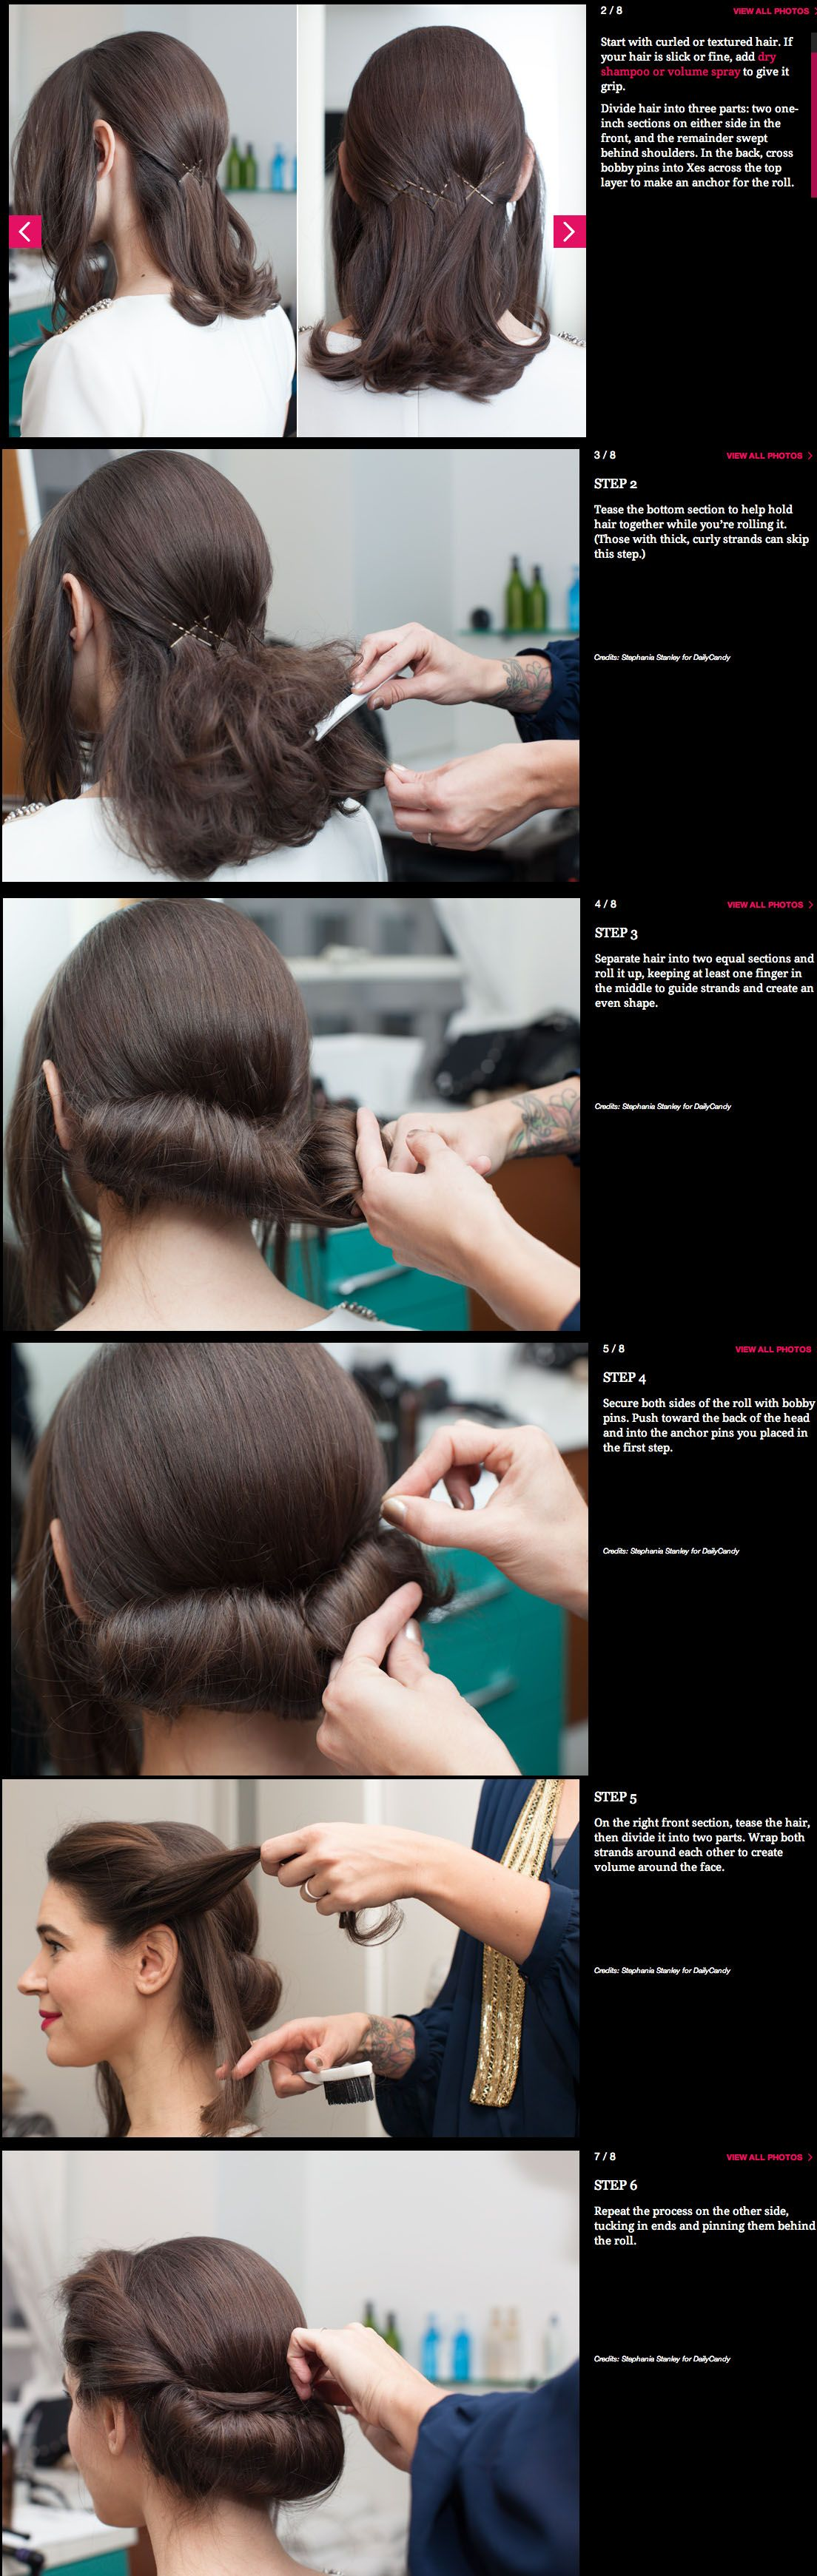 Diy low roll updo hairstyles pinterest low rolled updo updo